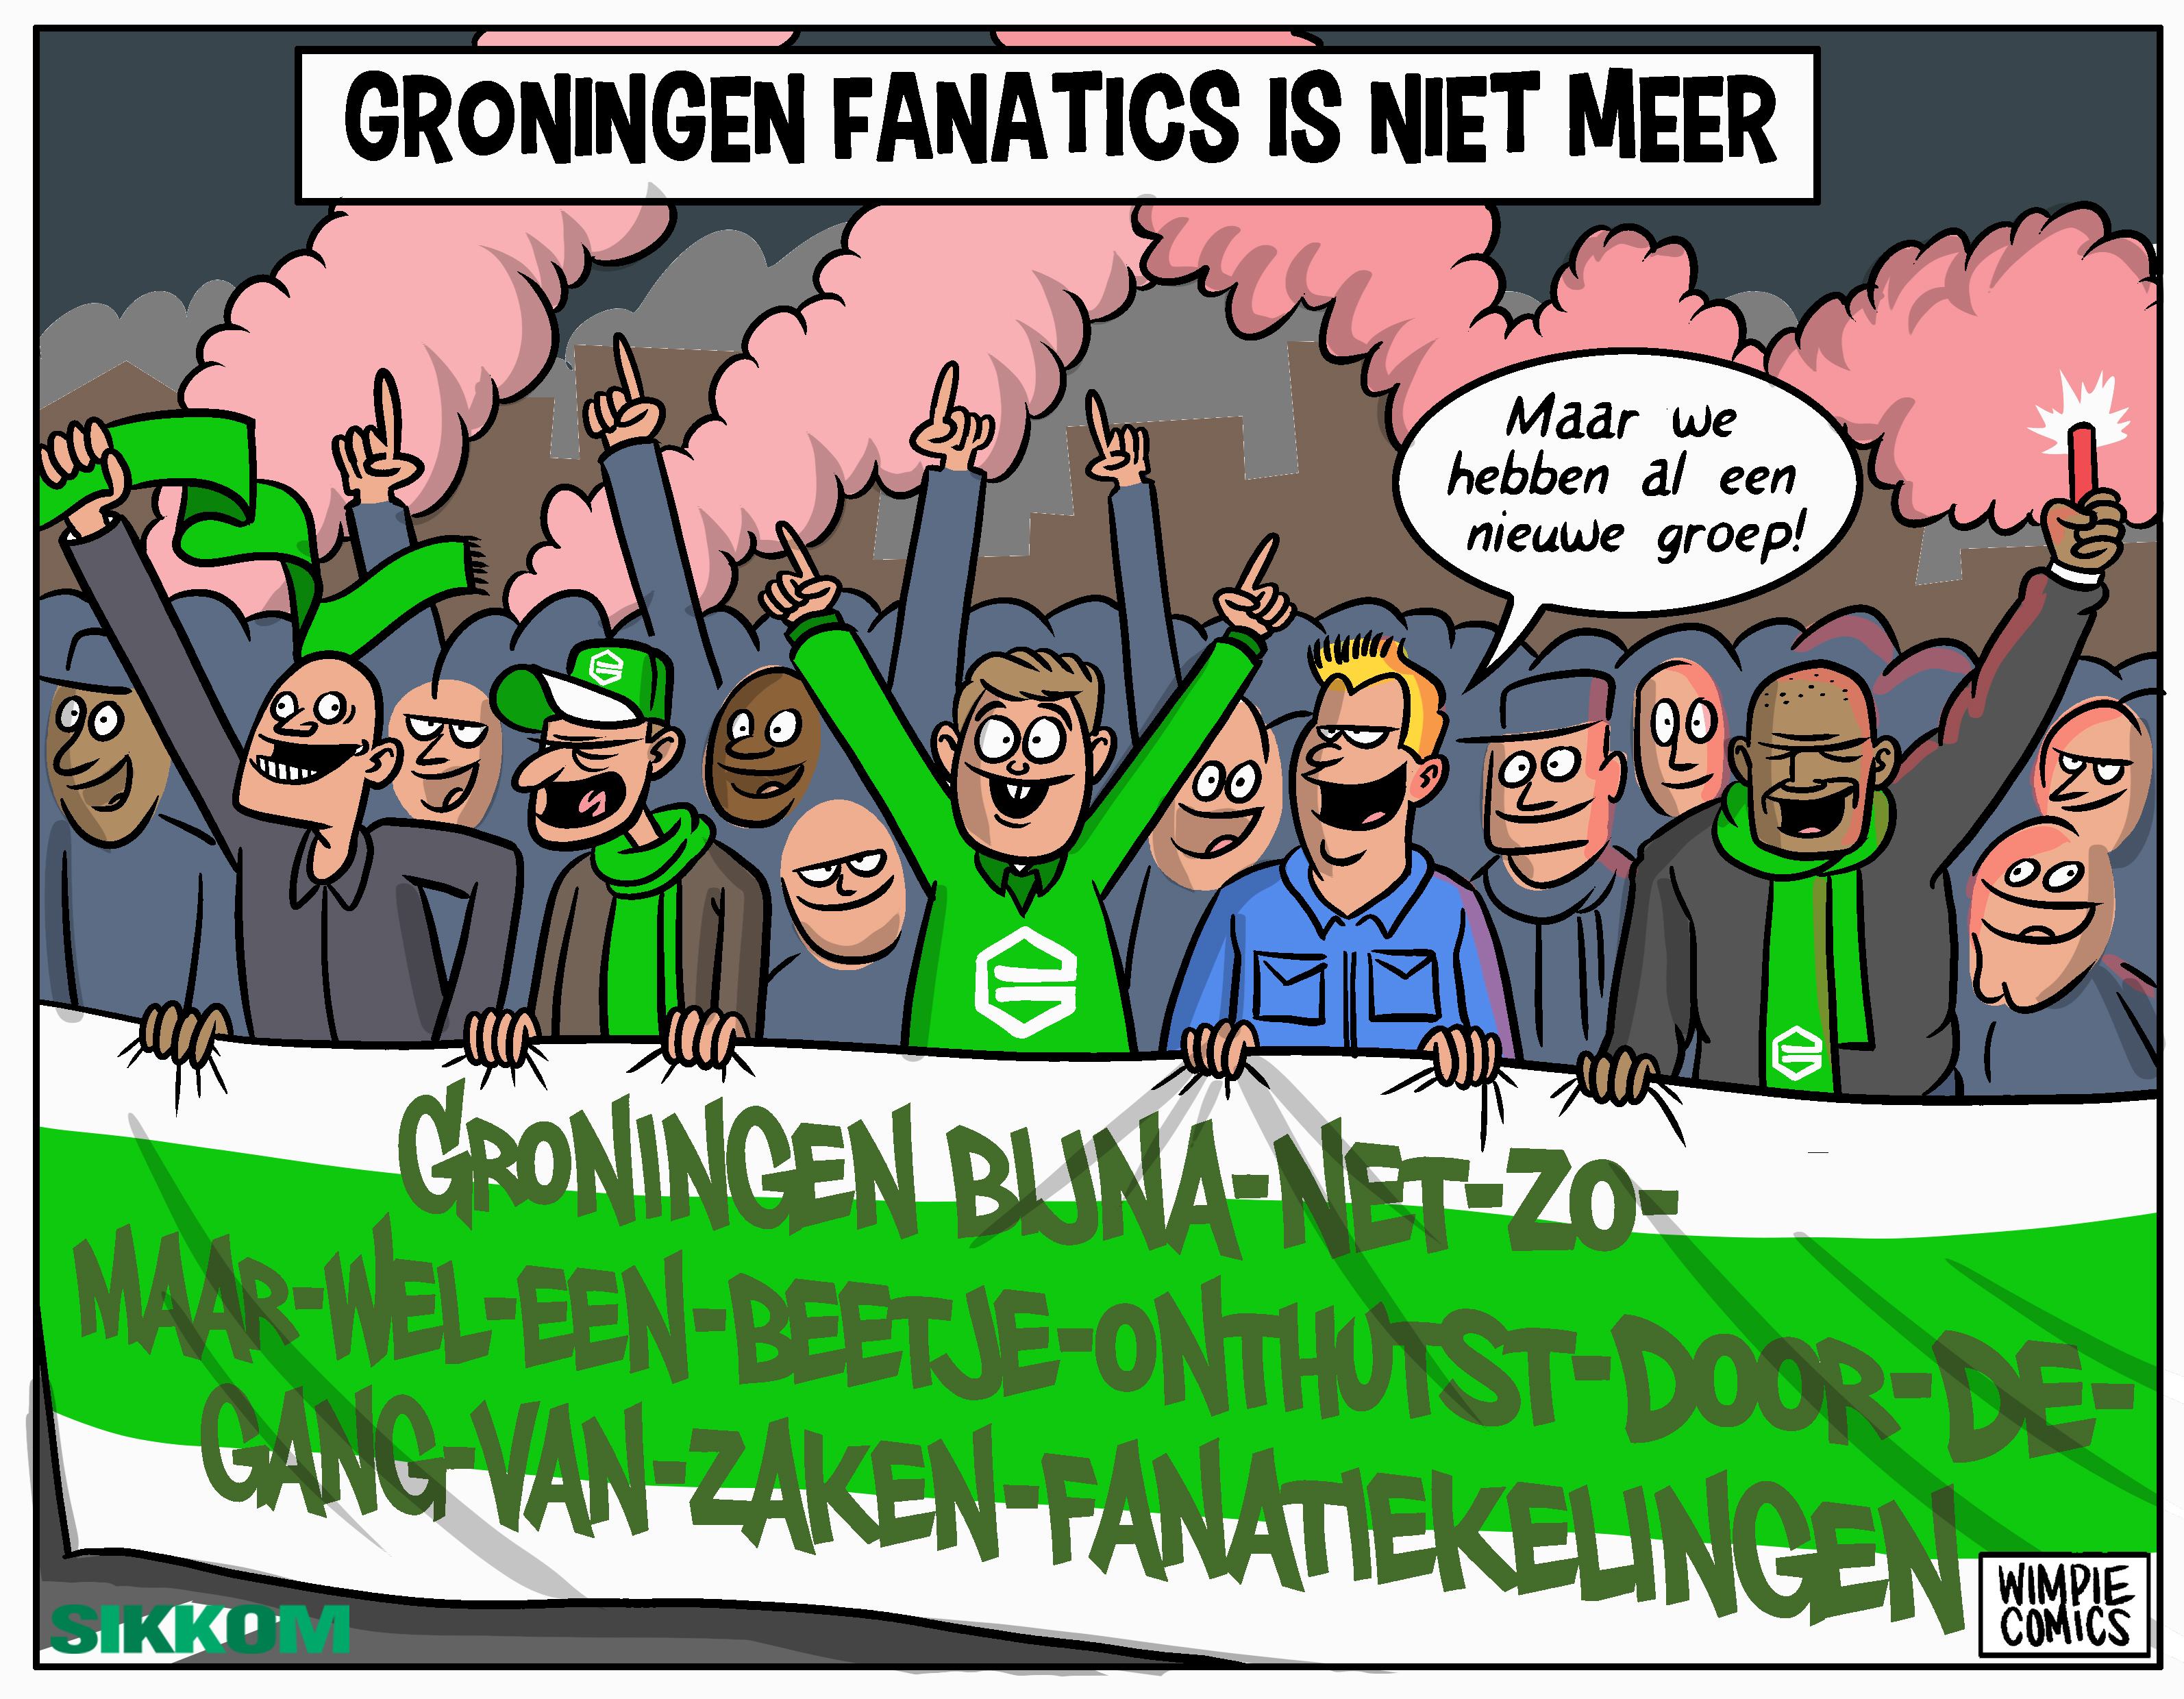 Einde Groningen Fanatics: the aftermath